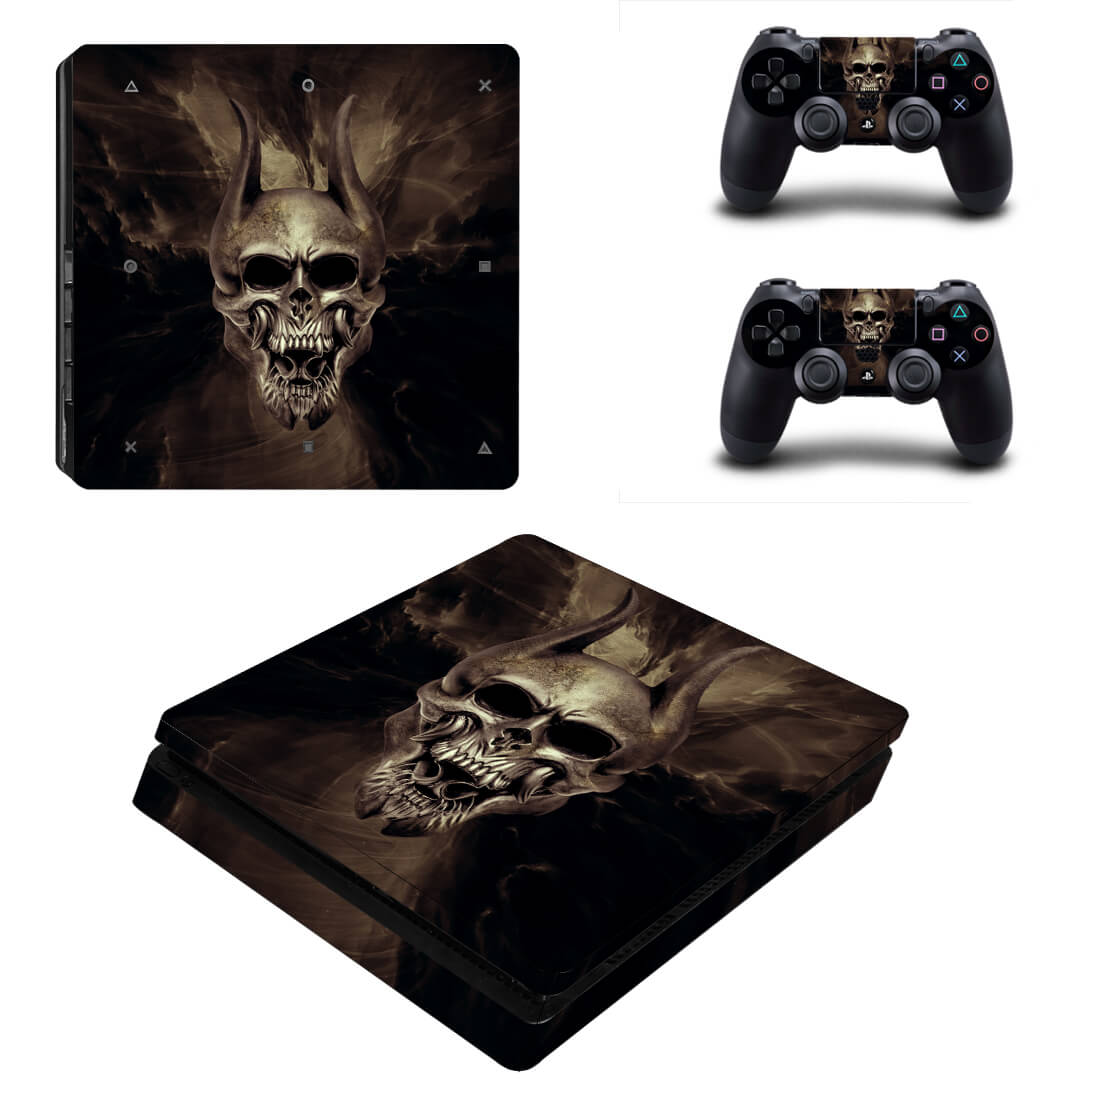 Darkness Skull PS4 Slim skin 1